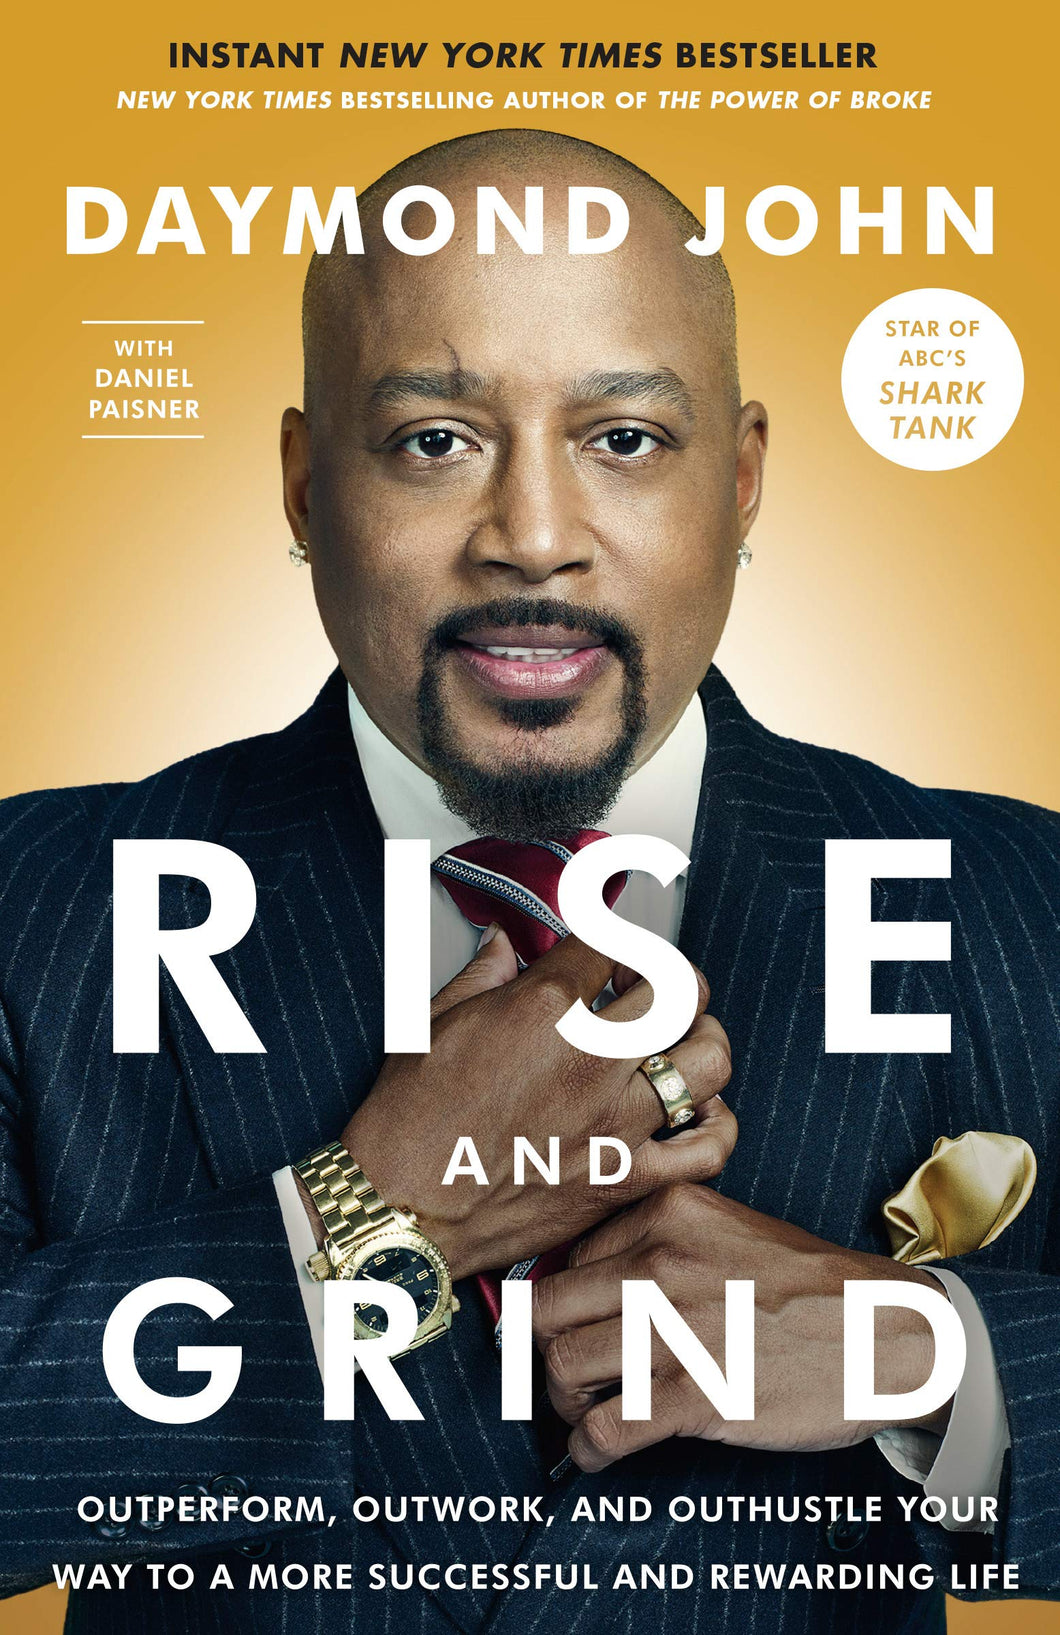 Rise and Grind: Outperform, Outwork, and Outhustle Your Way to a More Successful and Rewarding Life by Daymond John, Daniel Paisner